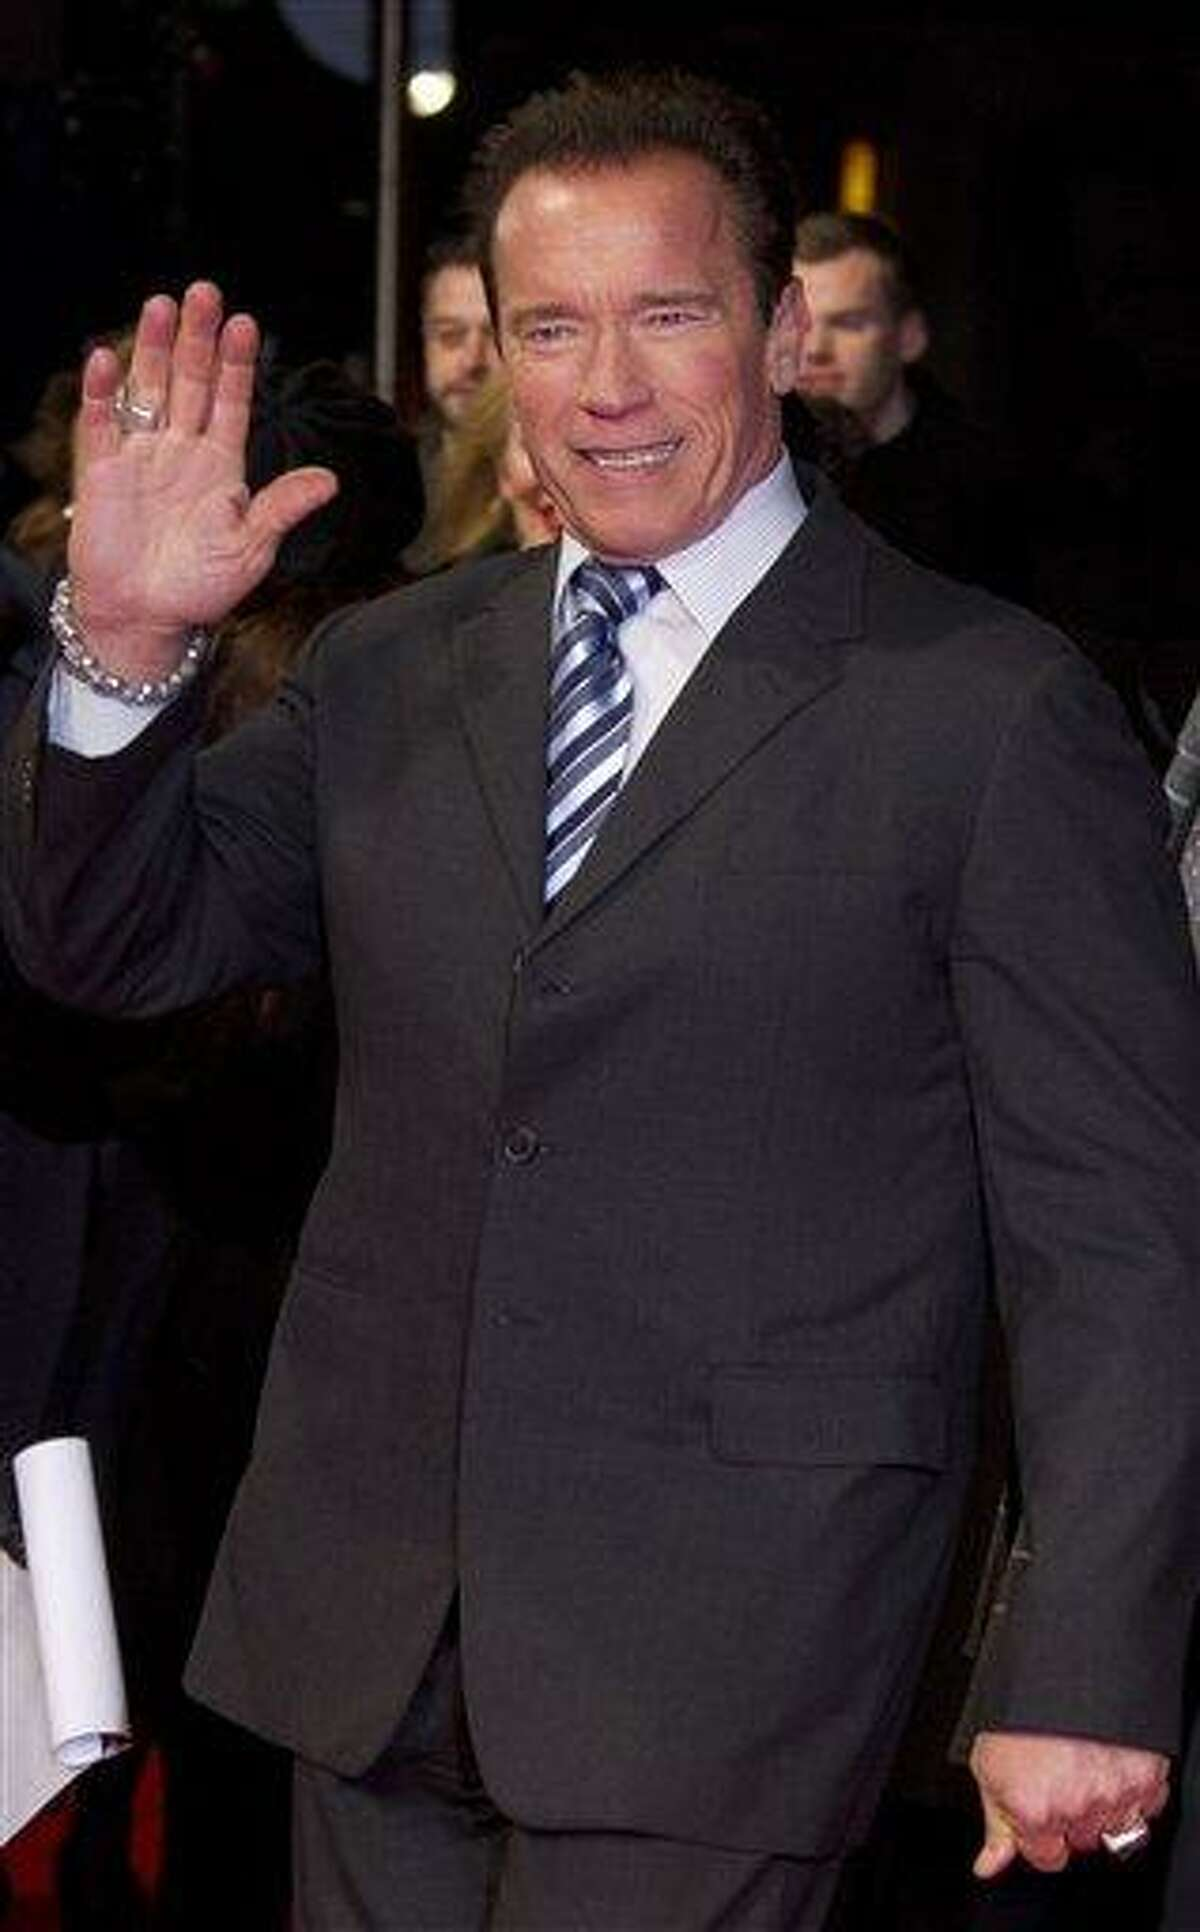 Arnold Schwarzenegger waves as he arrives for the European Premiere of The Last Stand at a central London cinema in Leicester Square, Tuesday, Jan. 22, 2013. (Photo by Joel Ryan/Invision/AP)